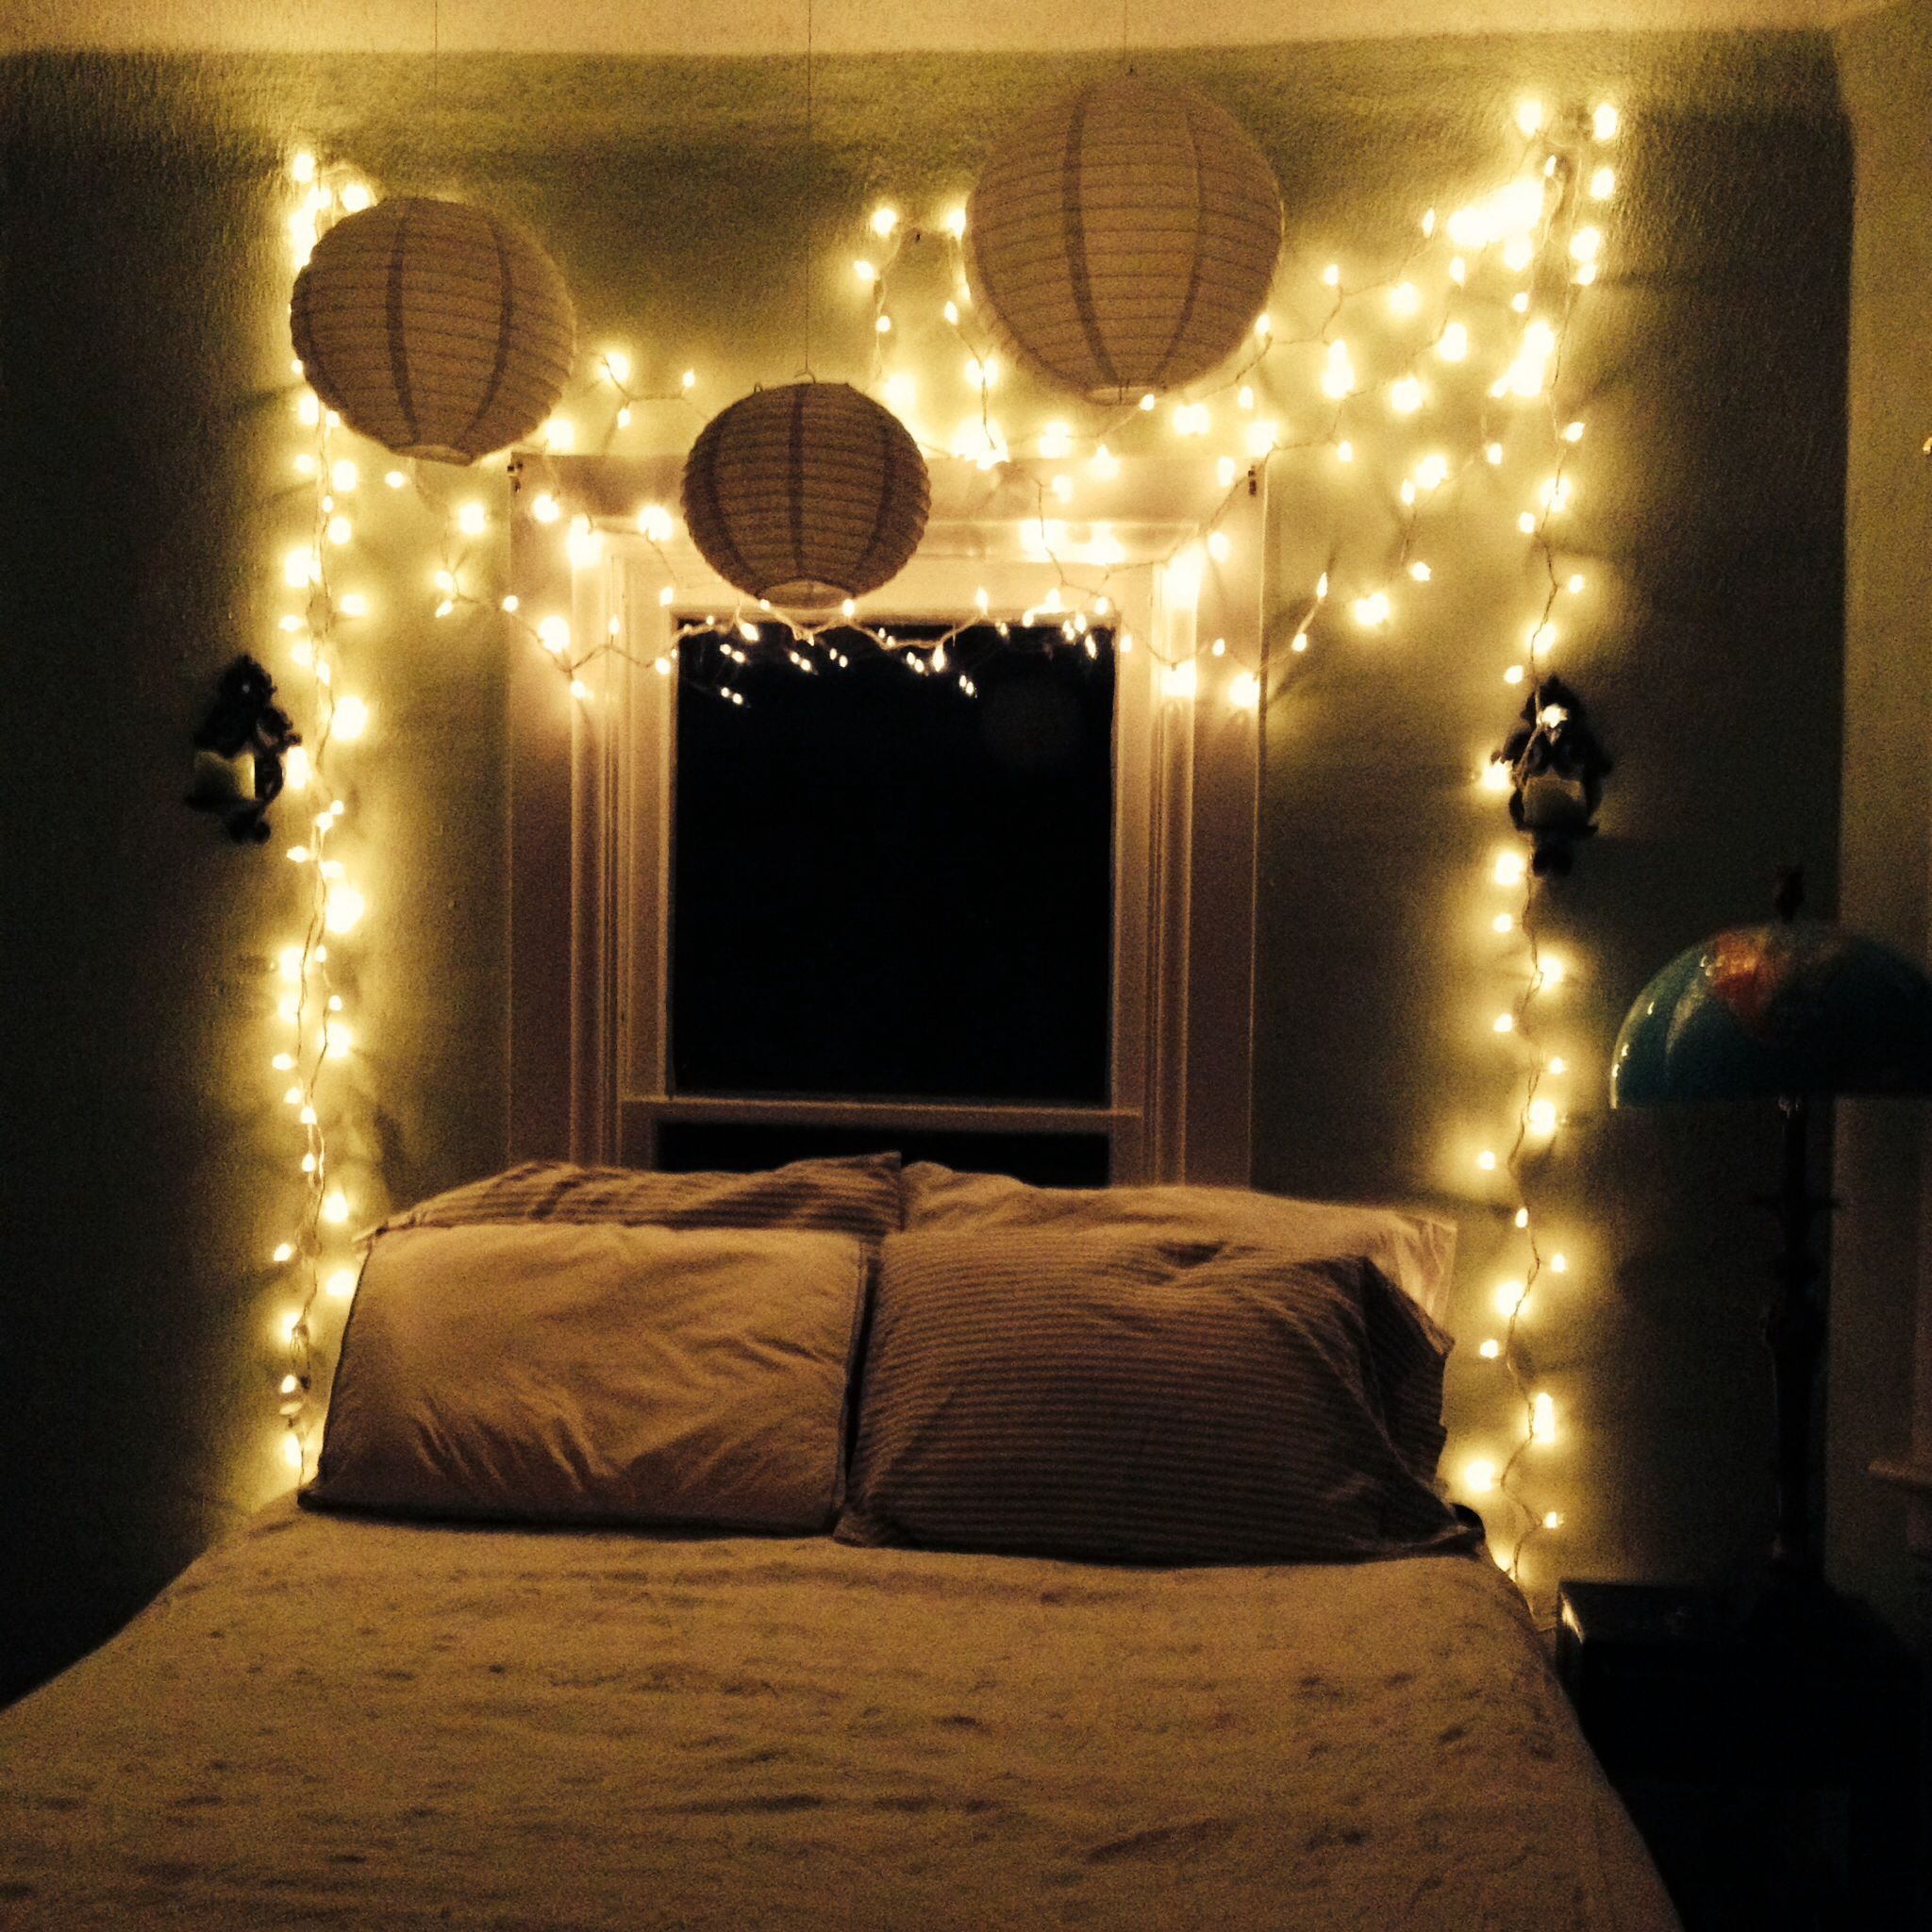 Bedroom ceiling string lights - My Bedroom Oasis Twinkle Lights White And Stripes